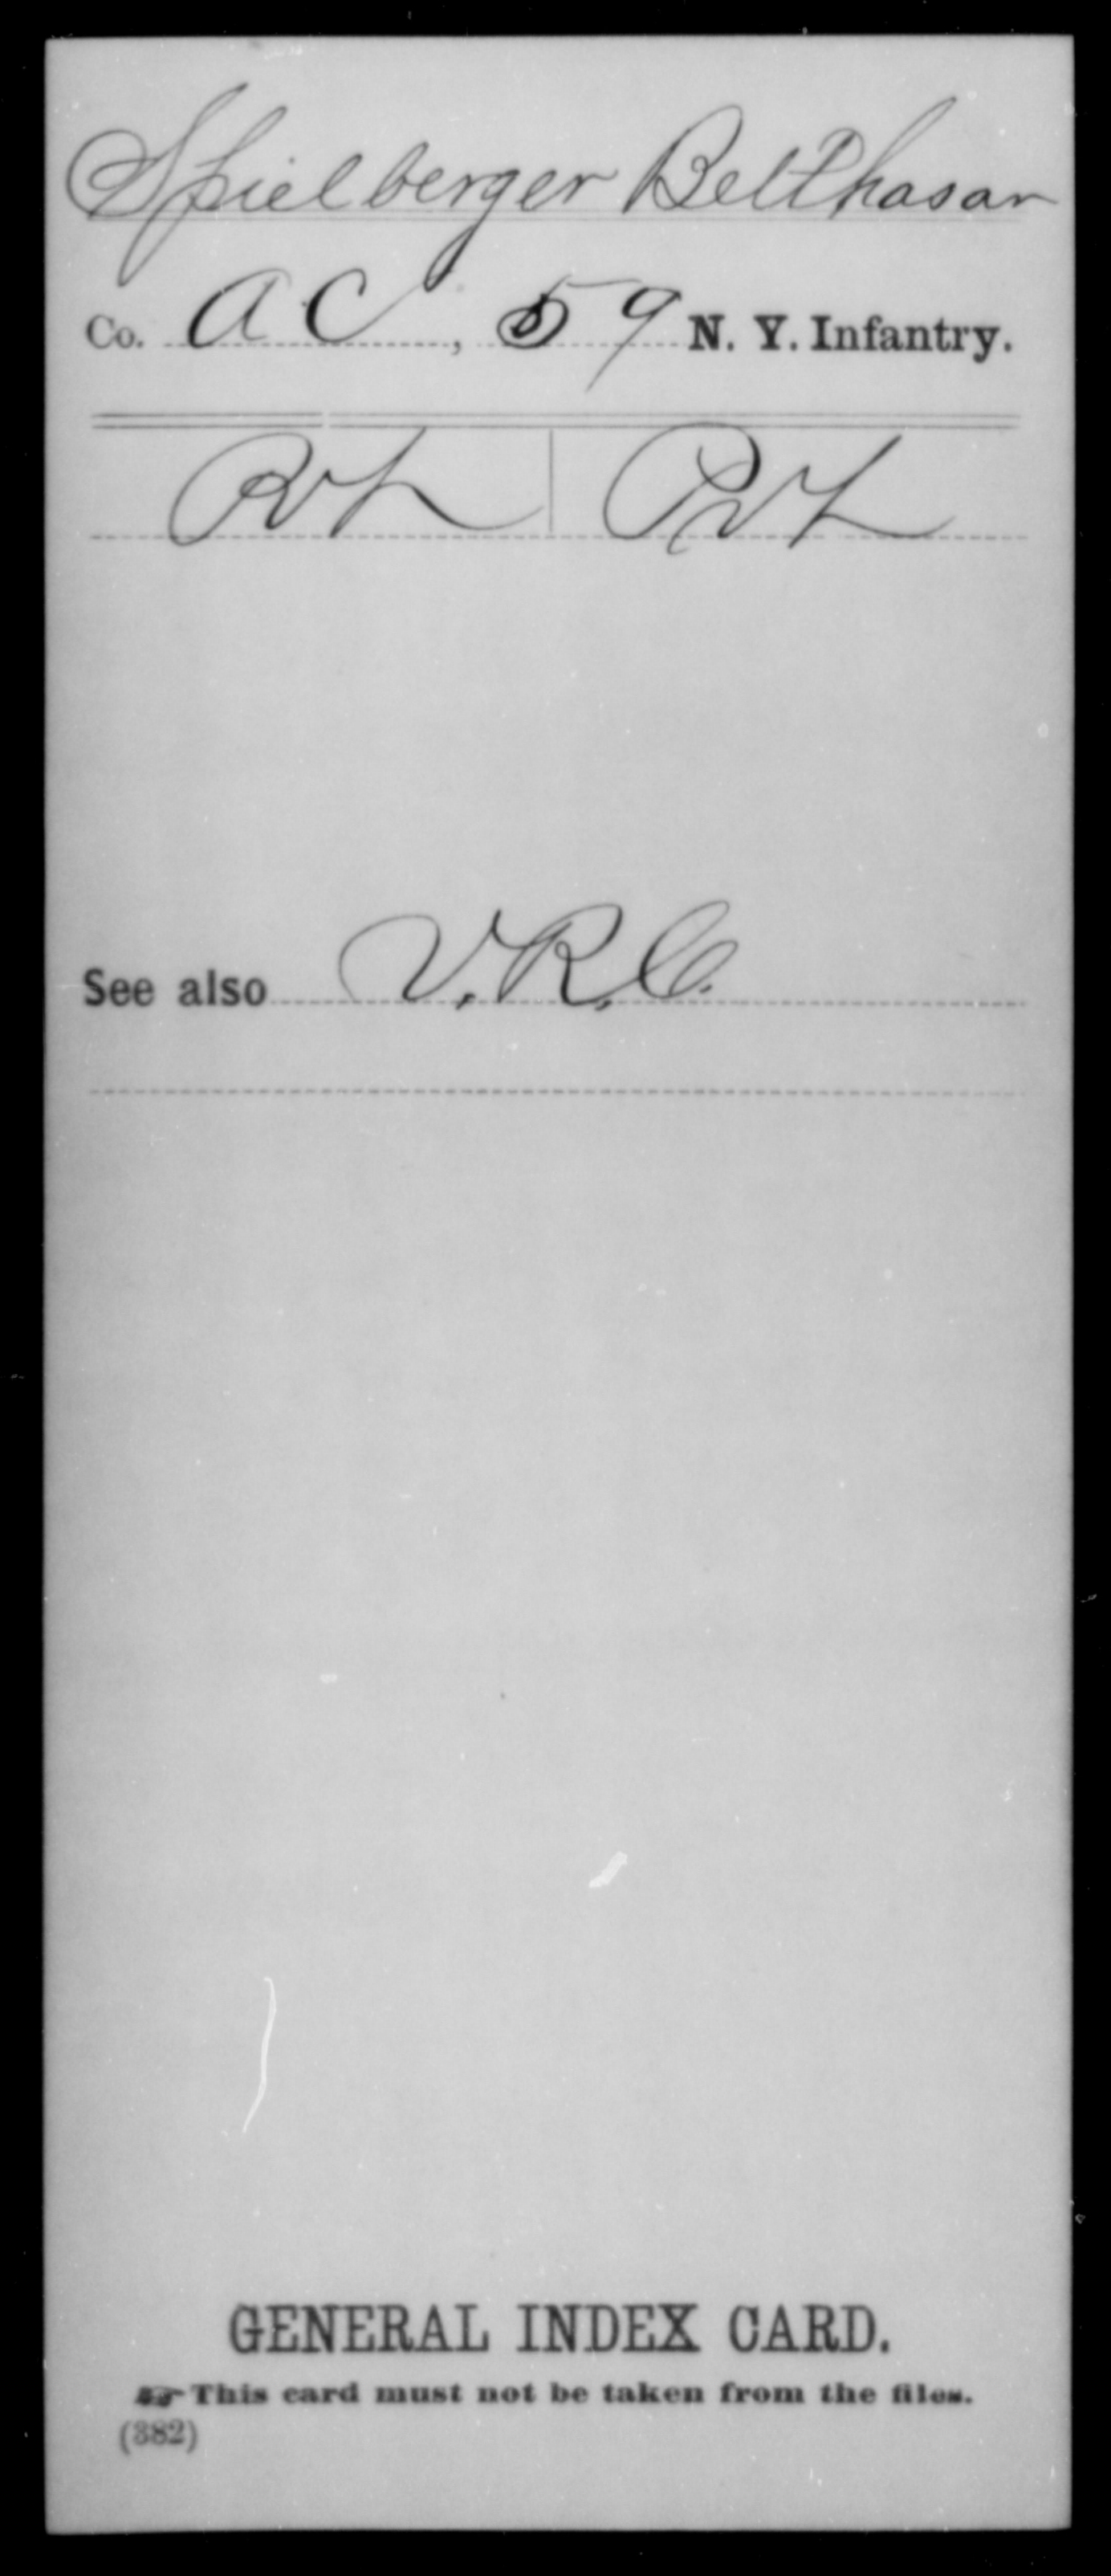 [New York] Spielberger, Belthasar - Unit: 59th Infantry, Company: A,C - Enlistment Rank: Pvt, Discharge Rank: Pvt